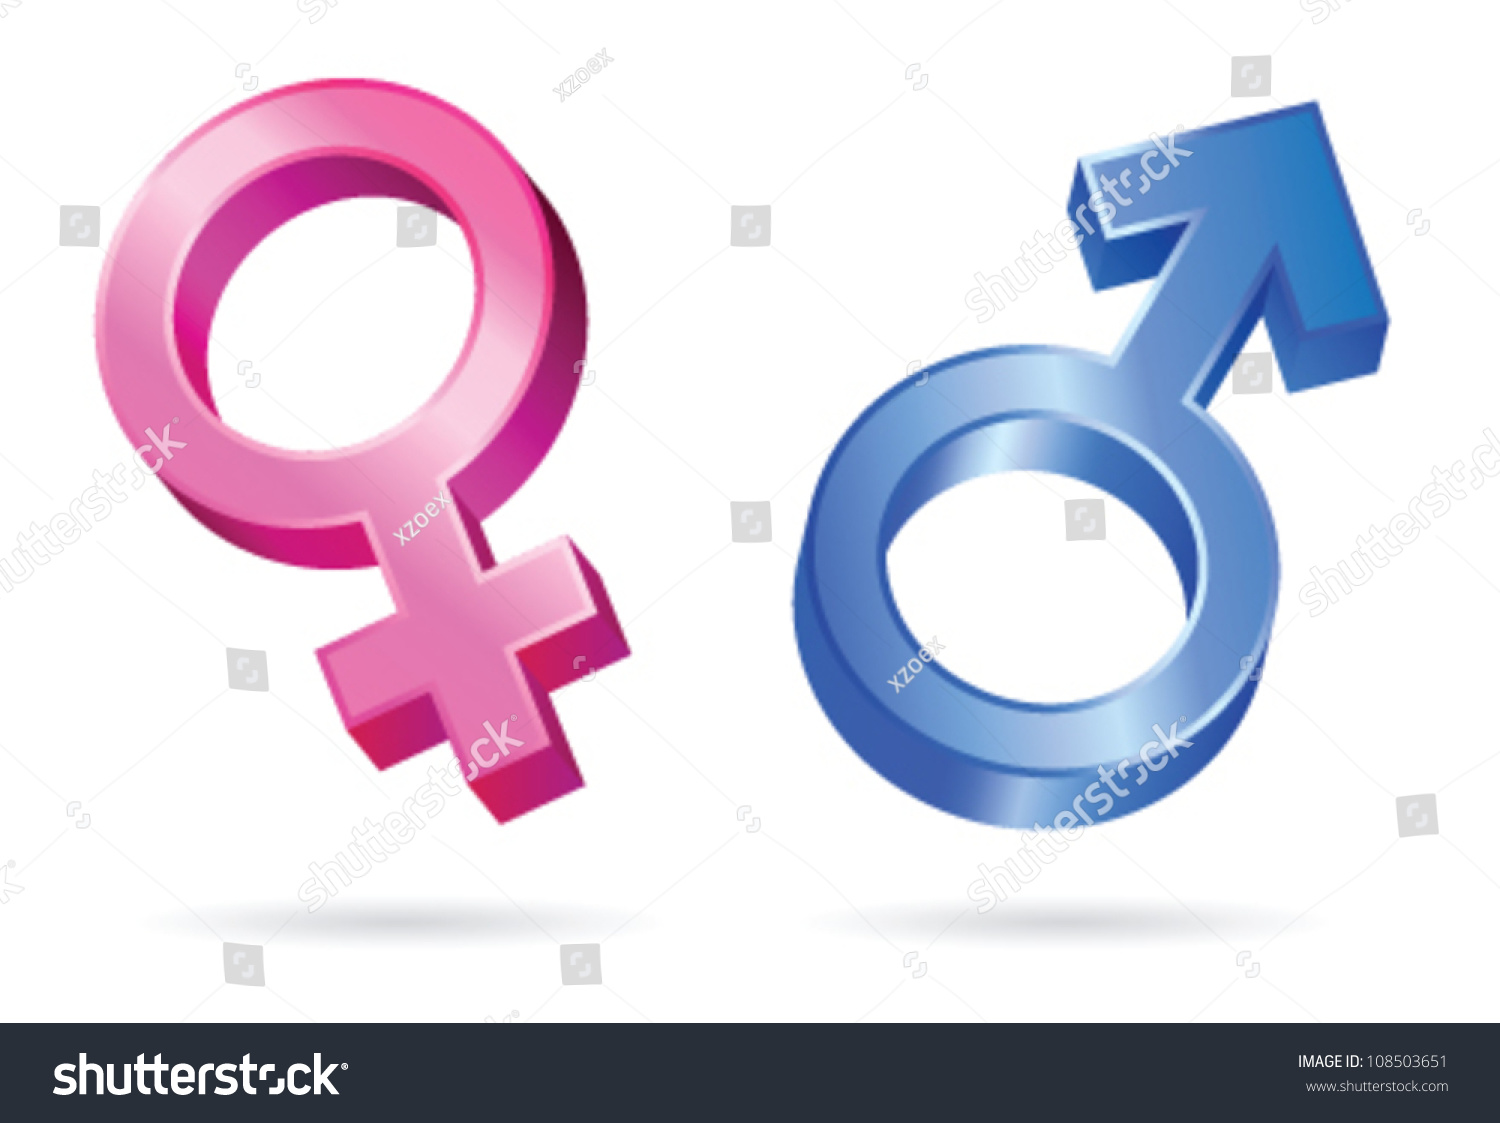 Isolated Illustrations Male Female Gender Symbols Stock Vector